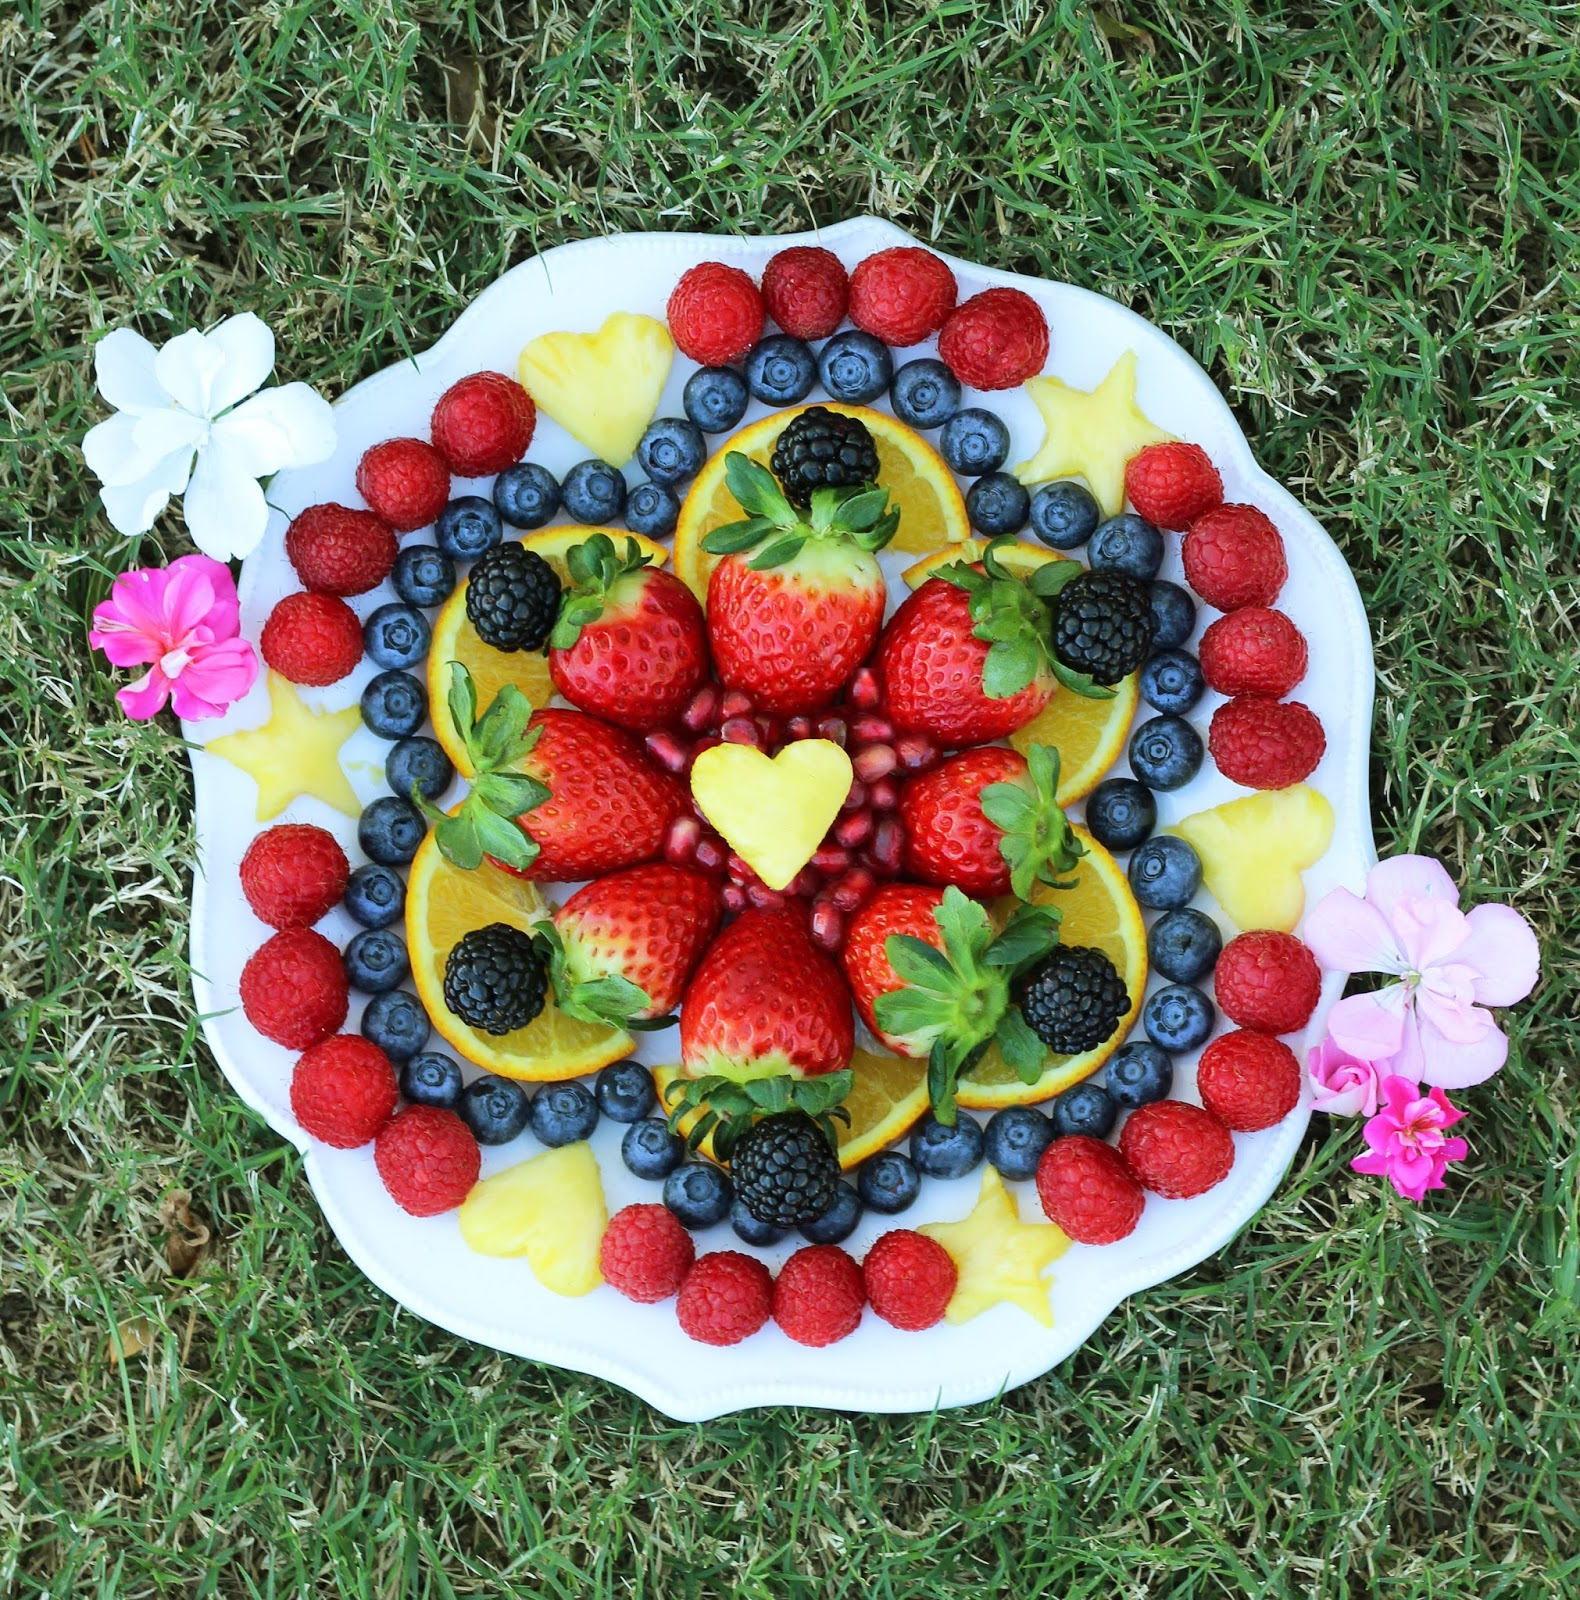 Rainbow Coordinated Fruits: Treese, Love, Happiness.: Eat The Rainbow Fruit Salad